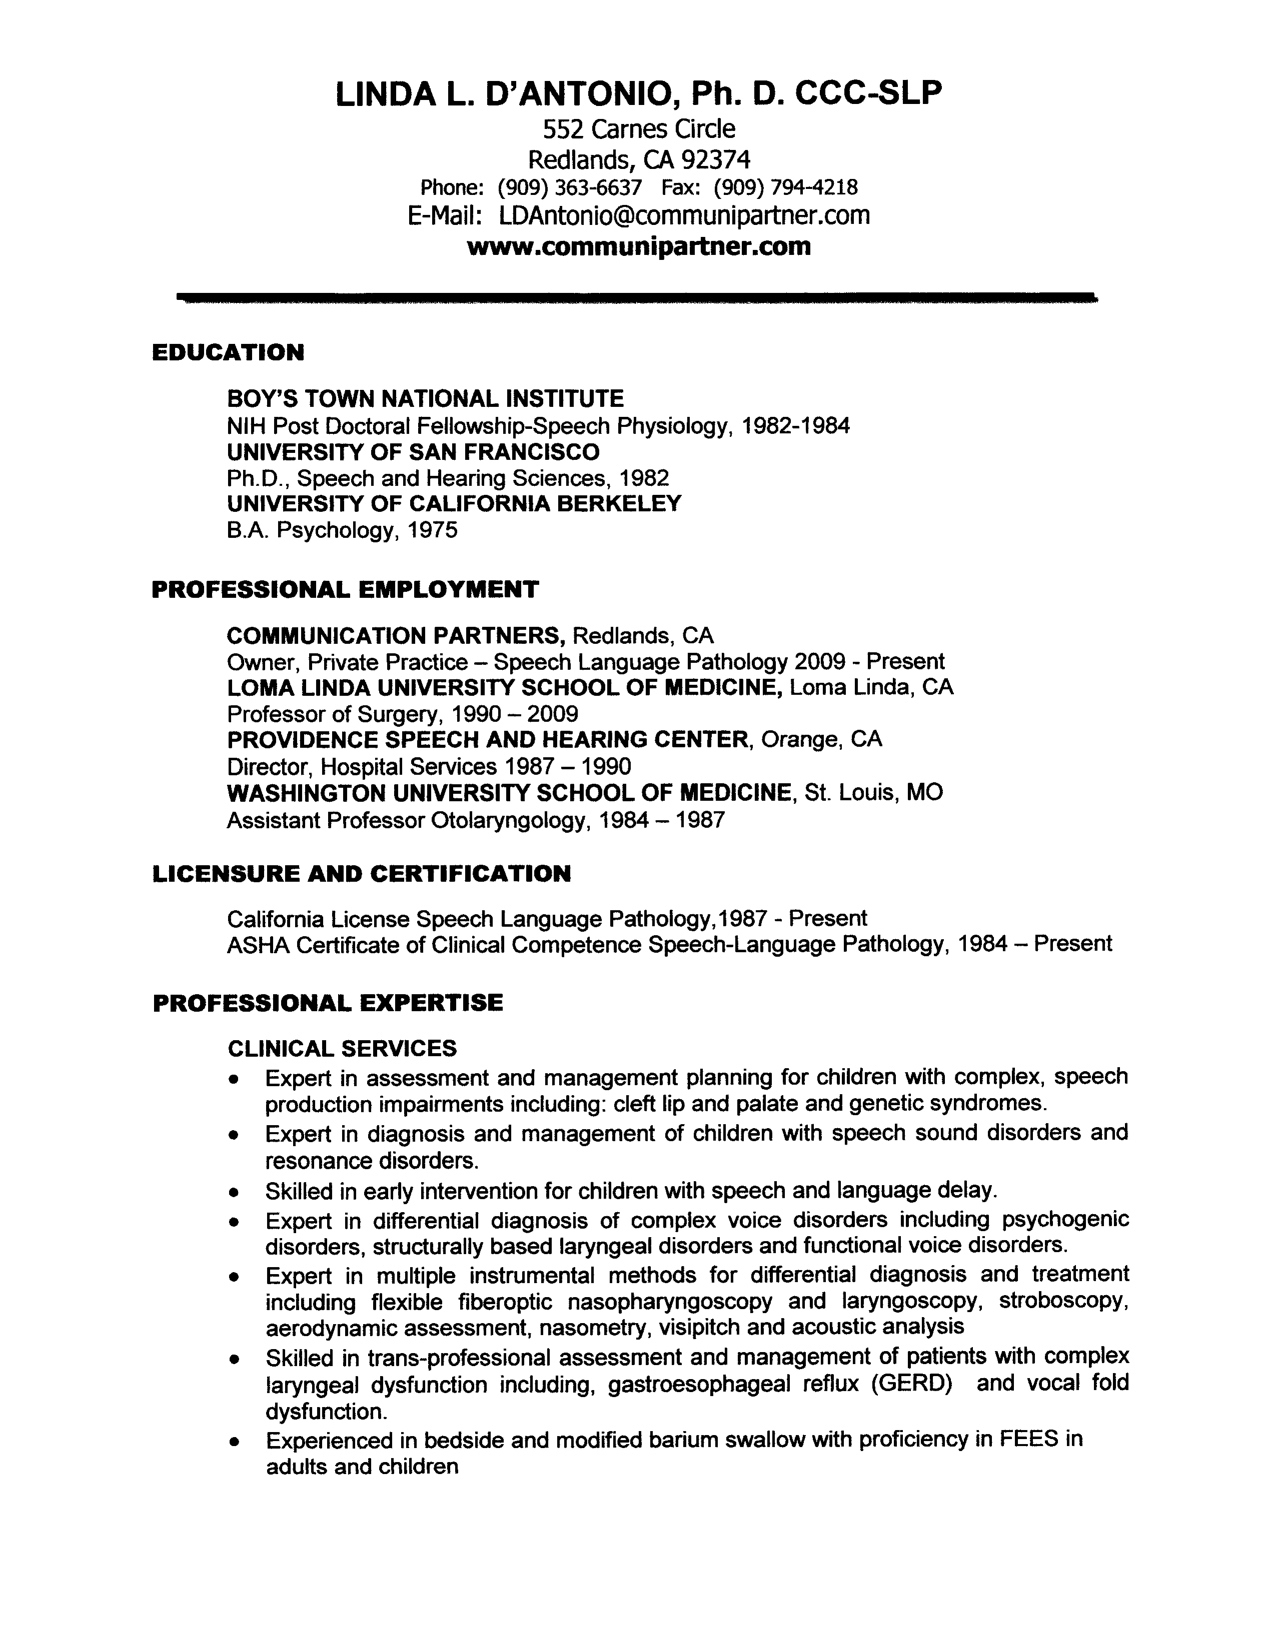 Sample Resume Language Cover Letter For Speech Language Pathologist Assistant